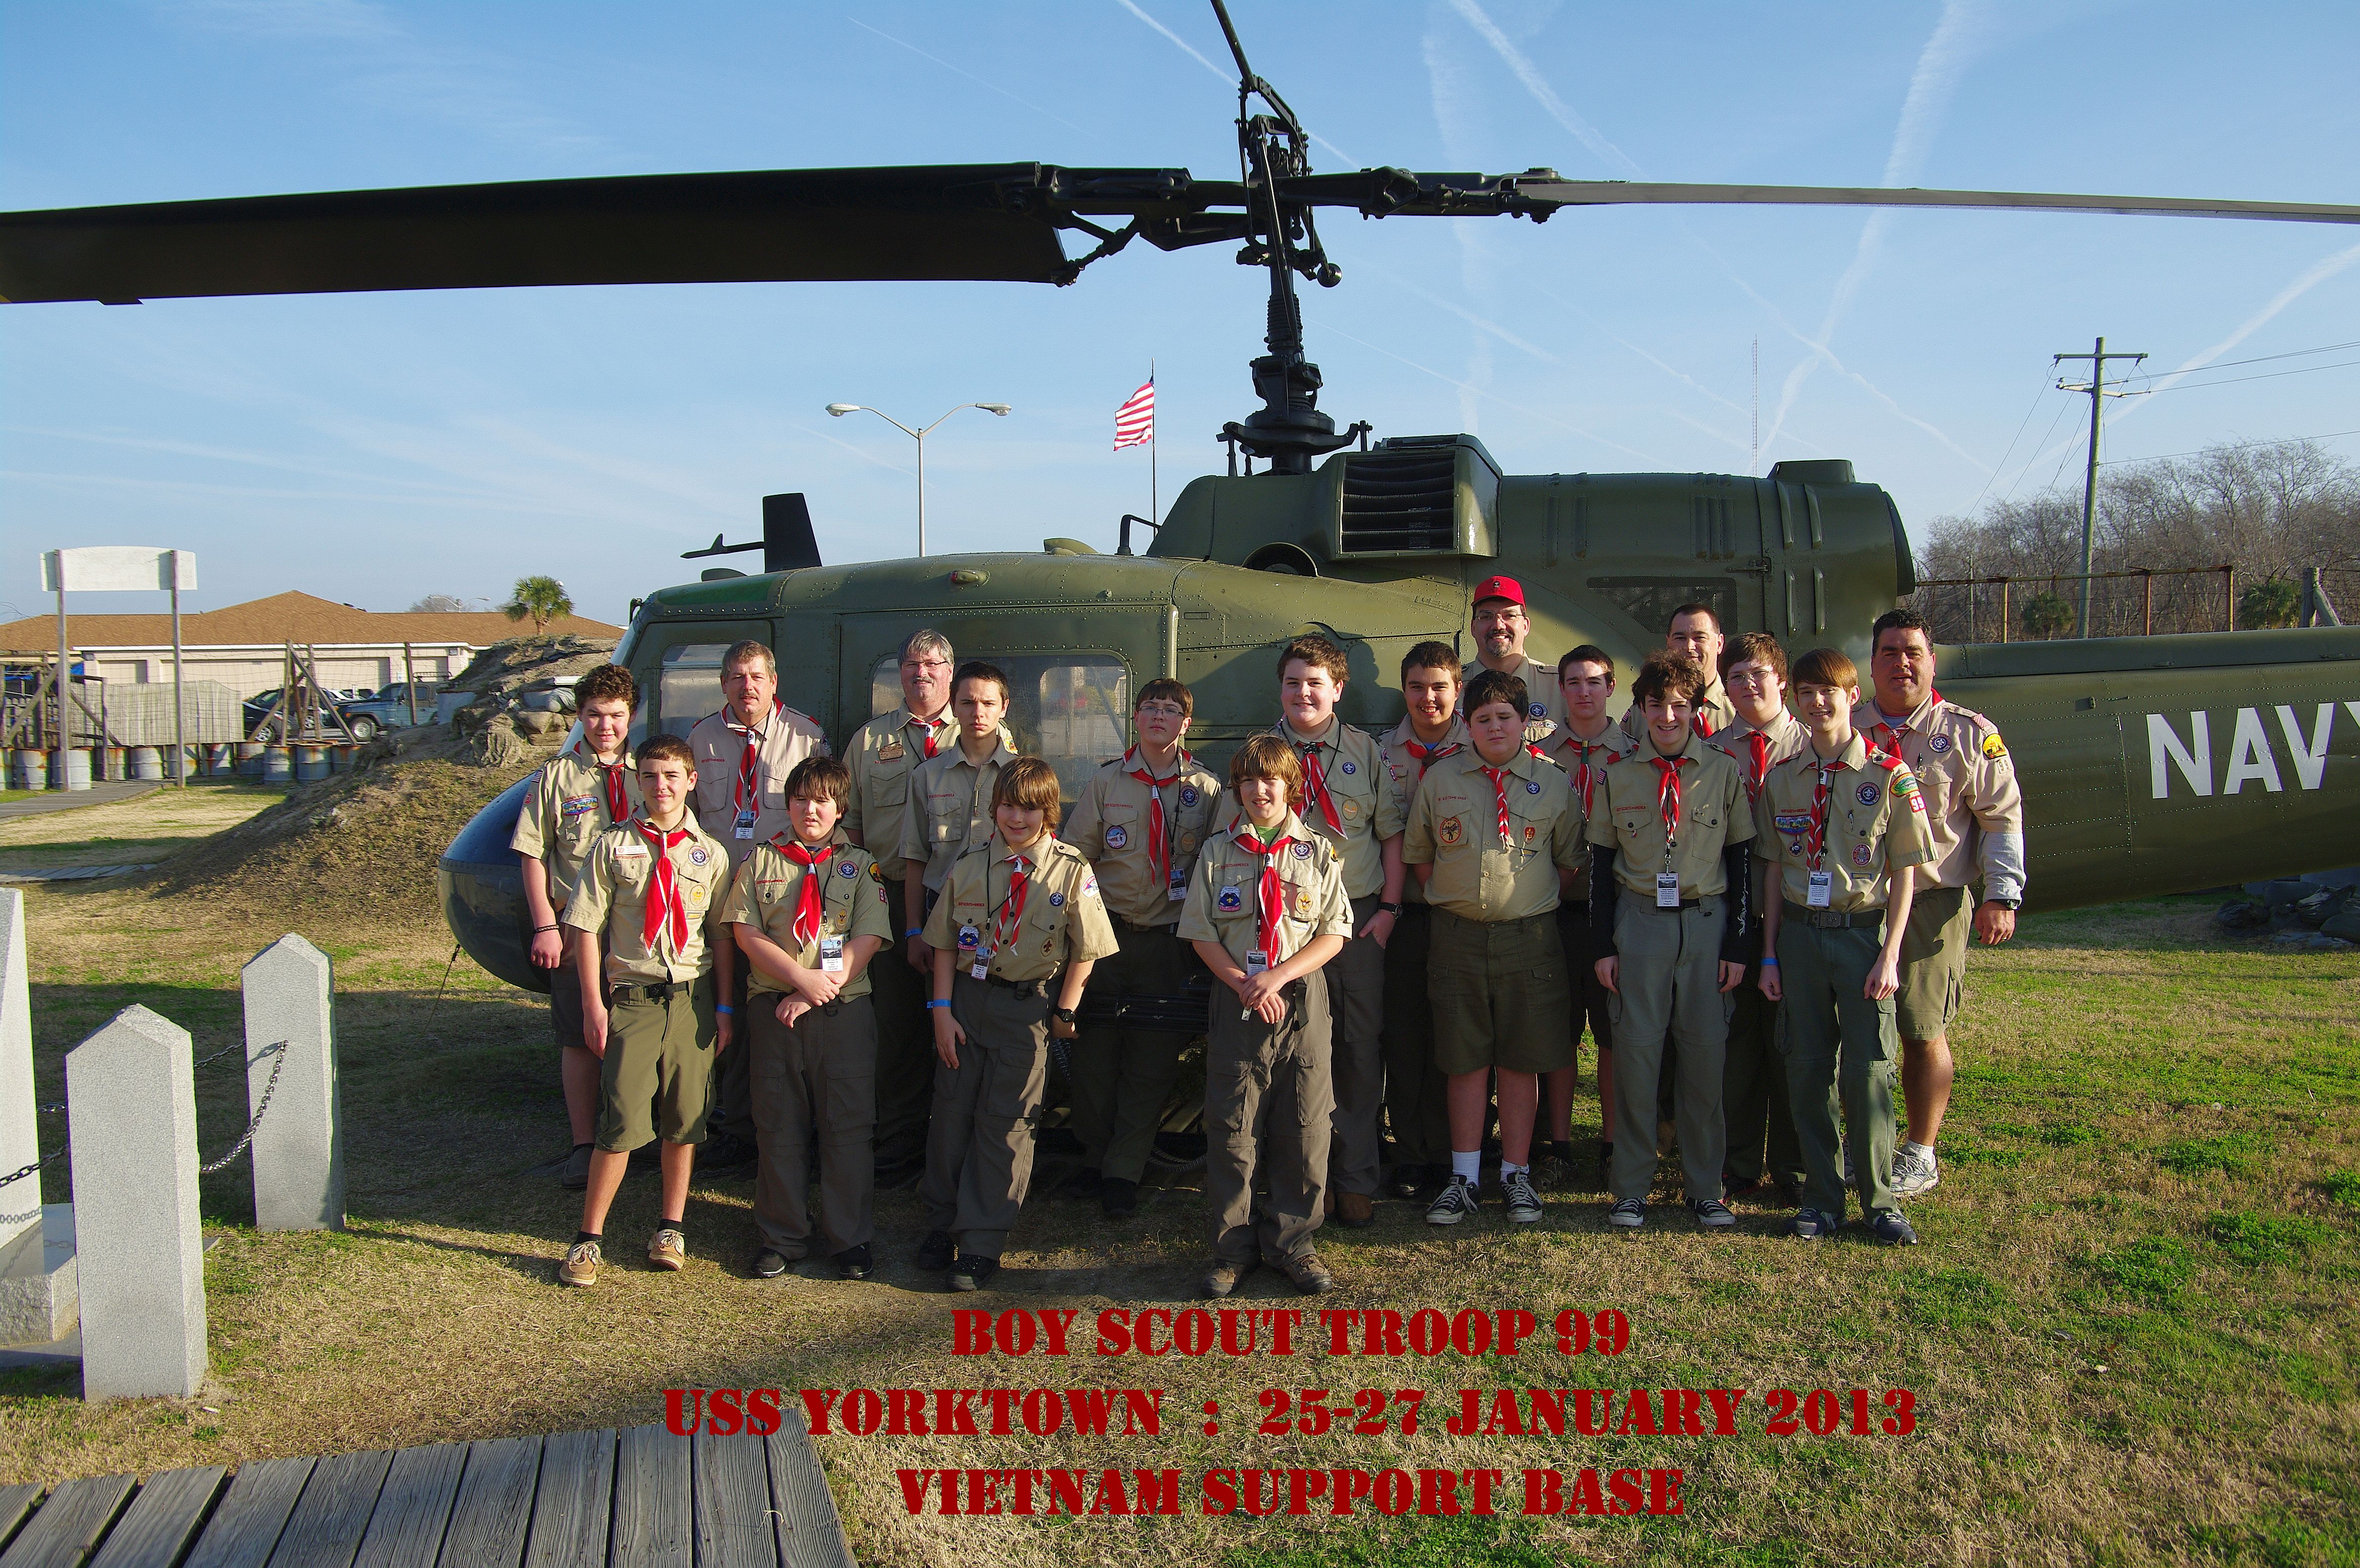 Troop 99 Vietnam Picture.jpg?13697893328